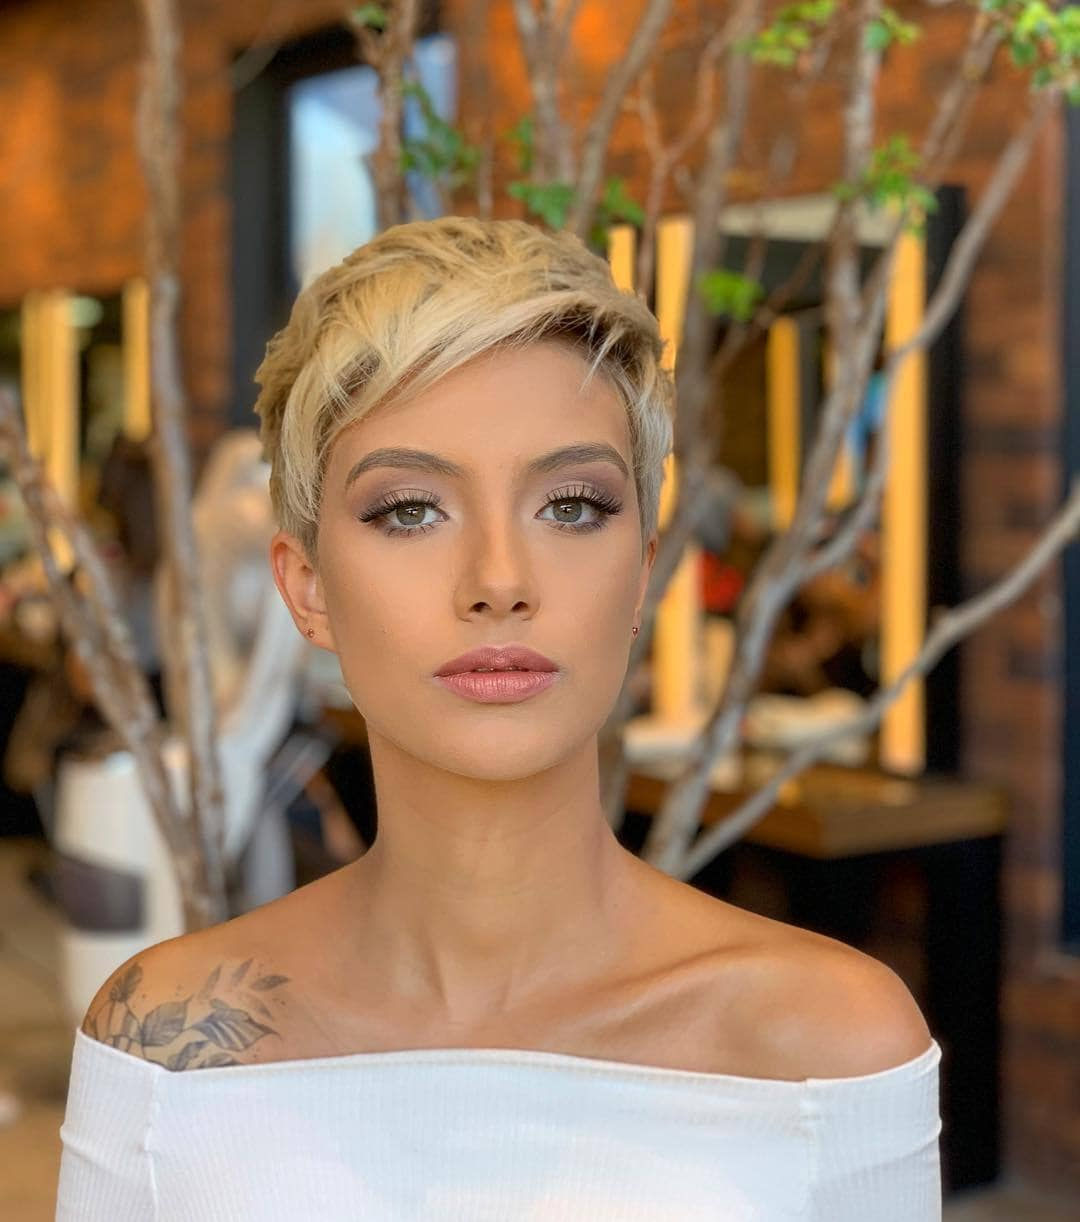 woman with short blonde pixie cut hairstyle